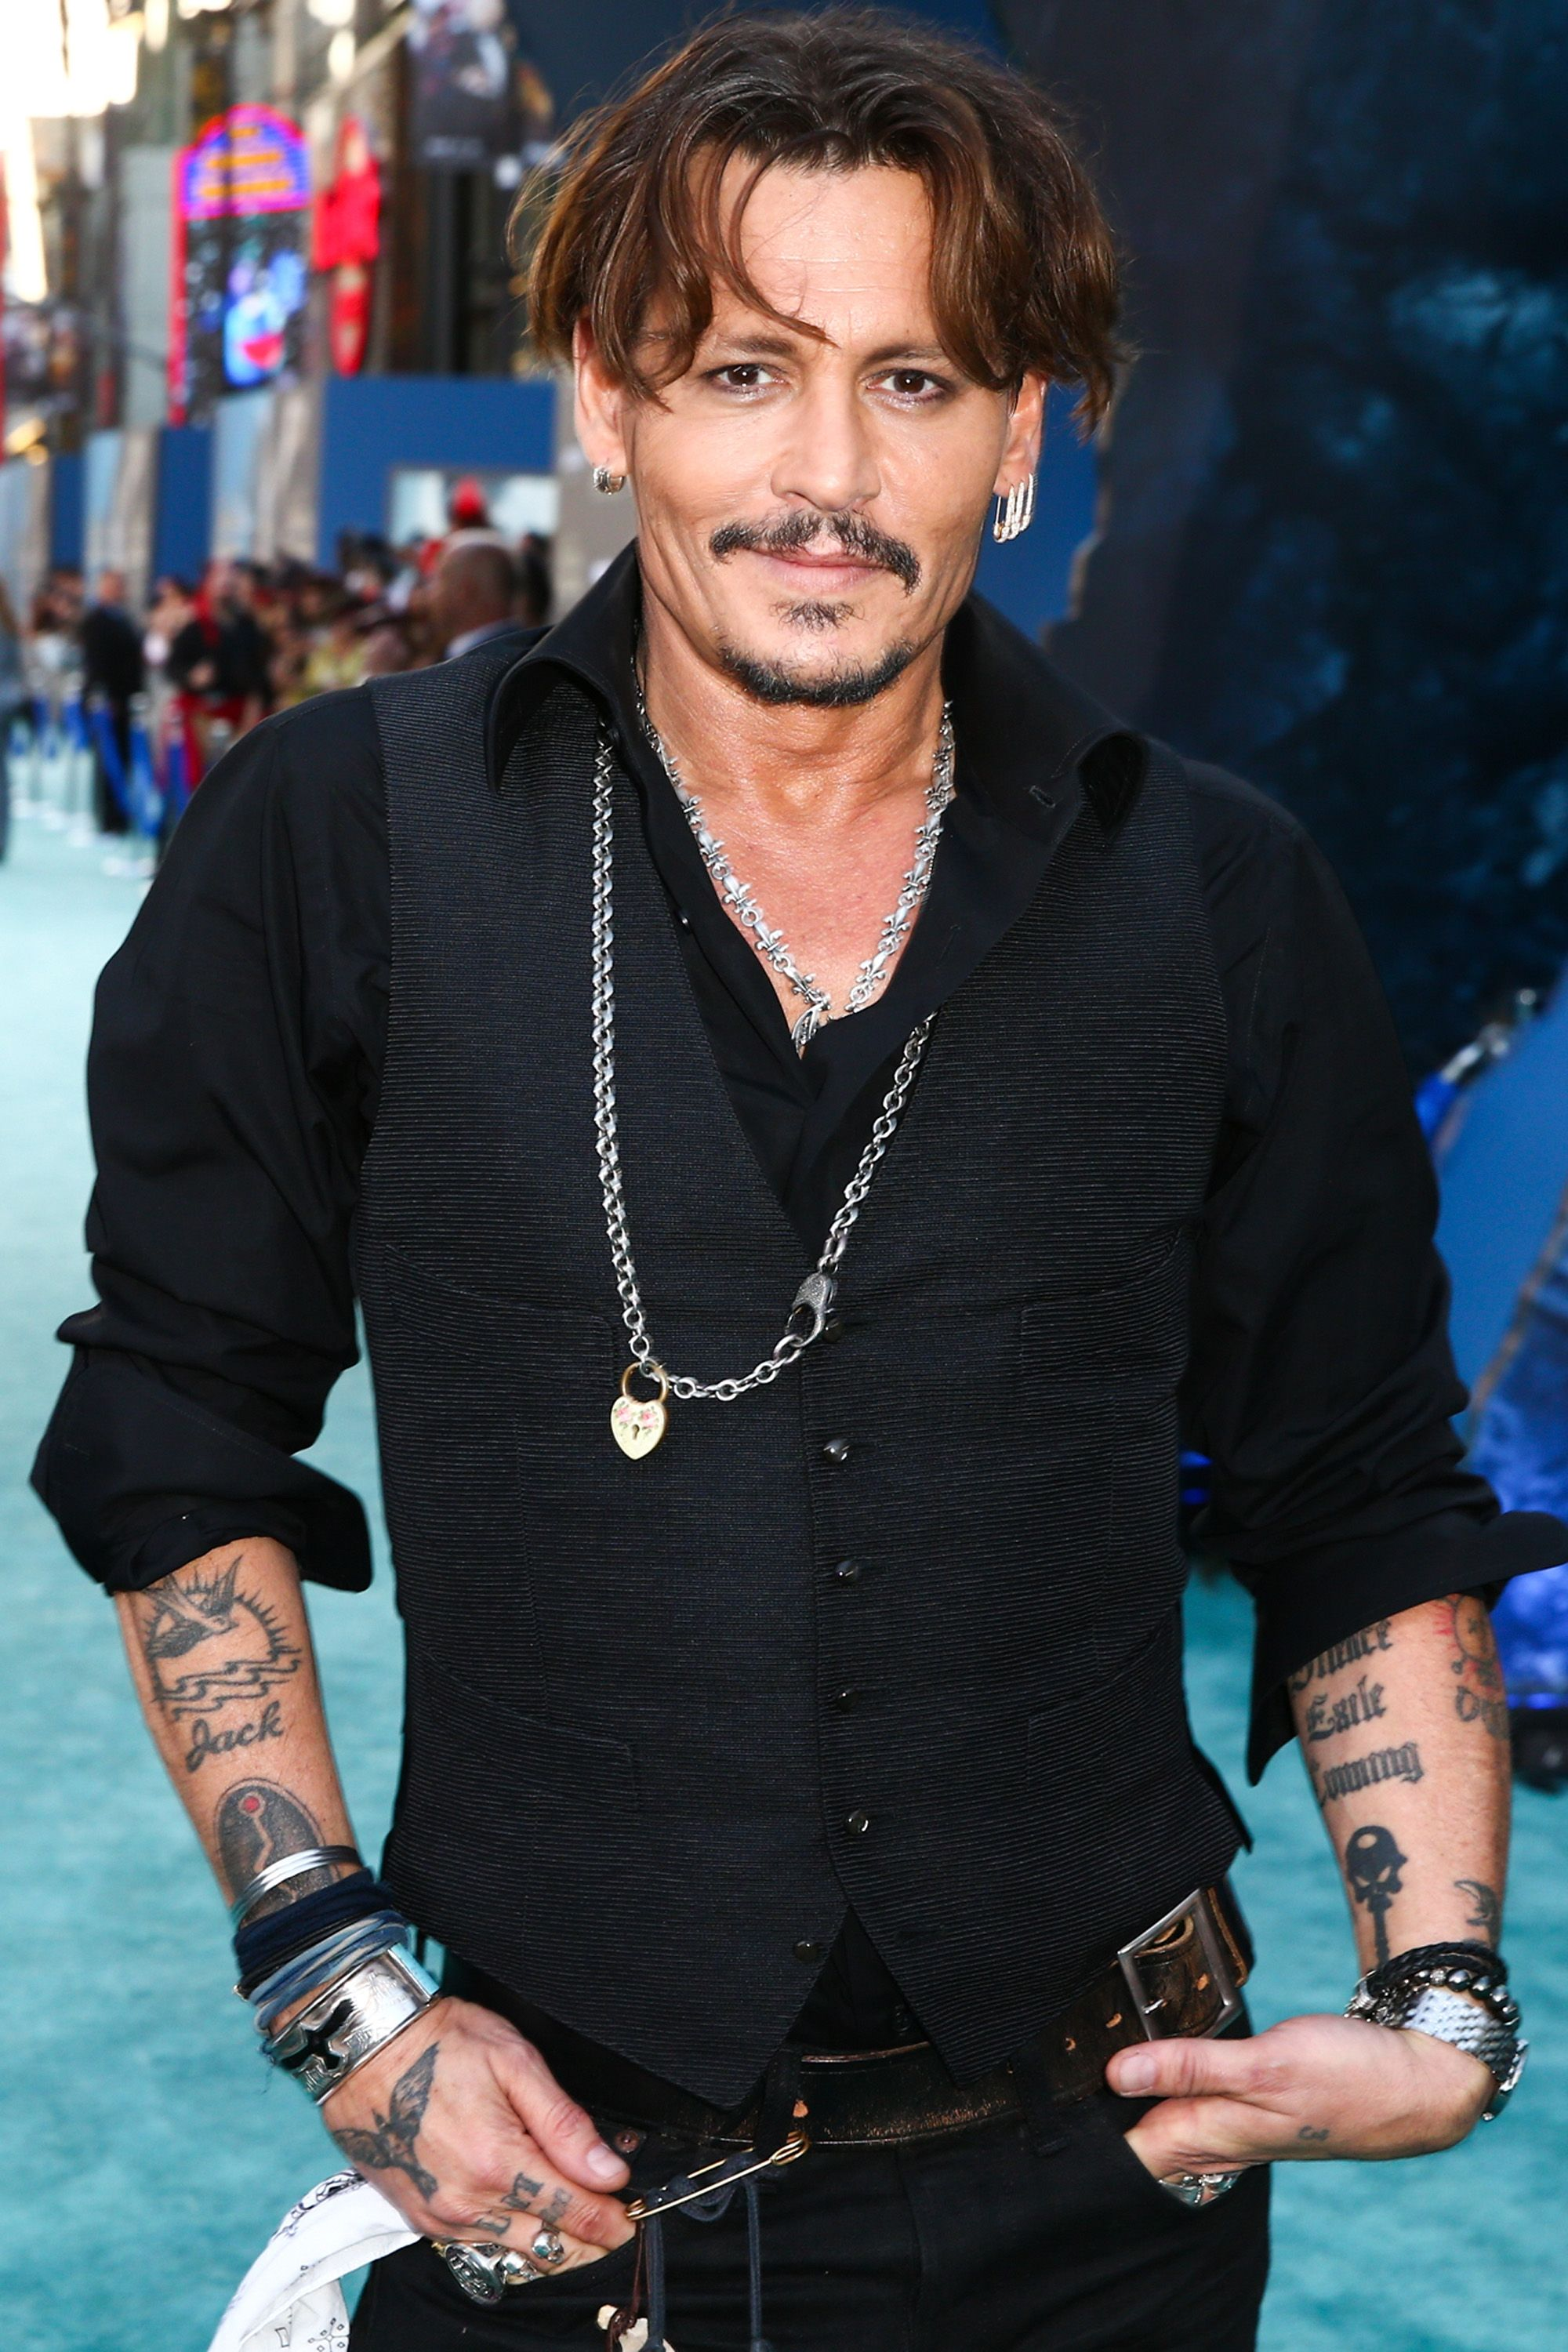 Premiere Of Disney's 'Pirates Of The Caribbean: Dead Men Tell No Tales' - Red Carpet